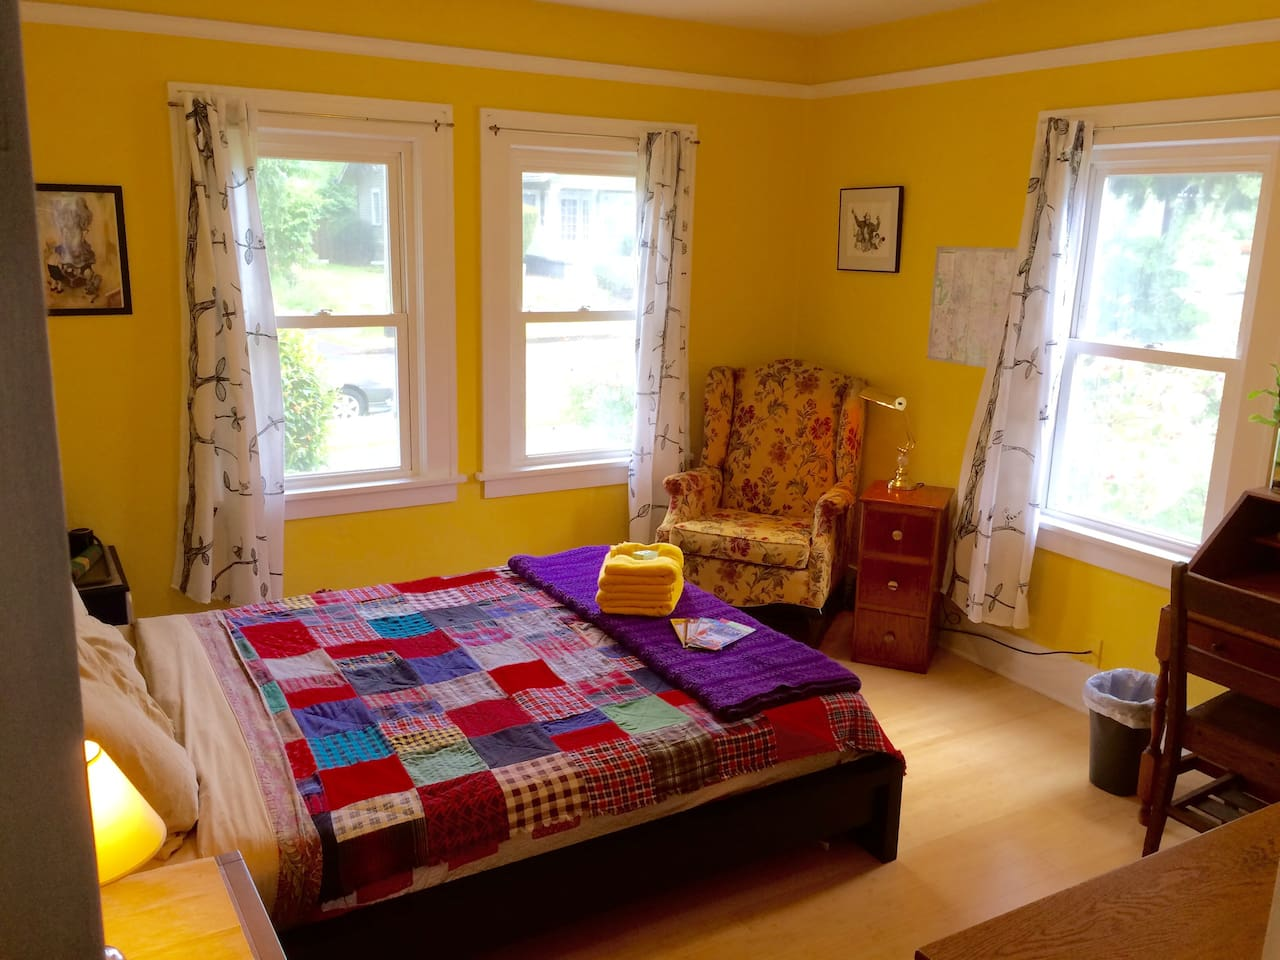 A crazy comfortable bed, sunny windows, and all the comforts of home!